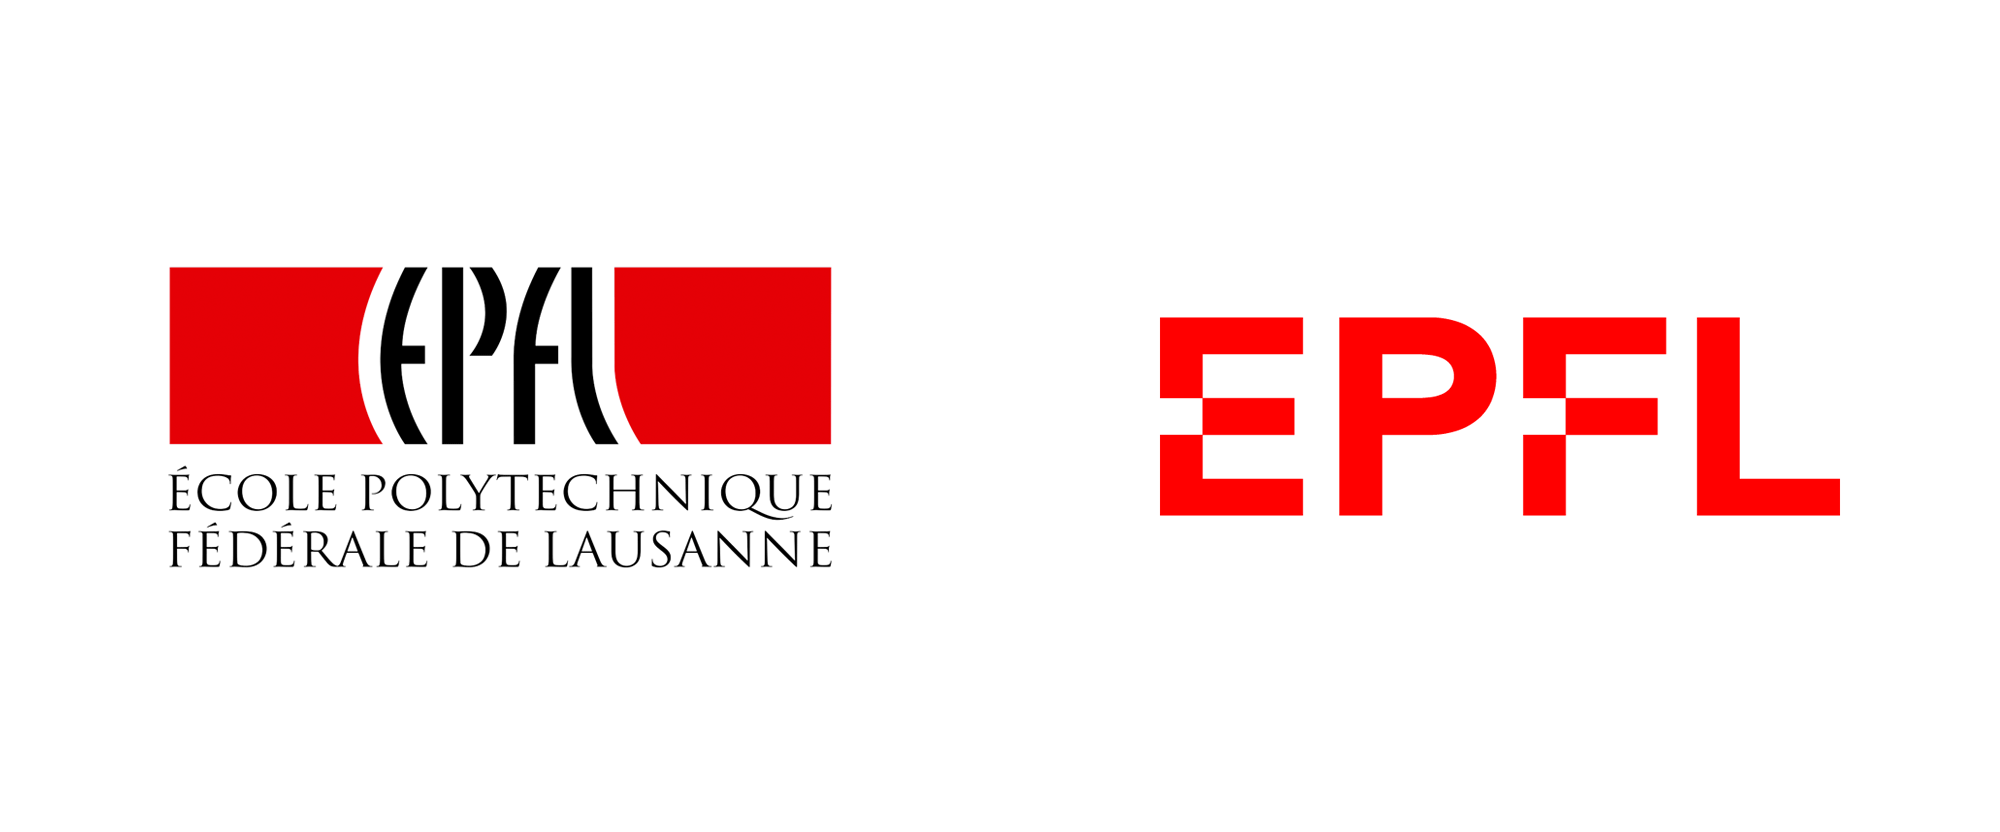 New Logo for Ecole Polytechnique Fédérale de Lausanne by Moser Design